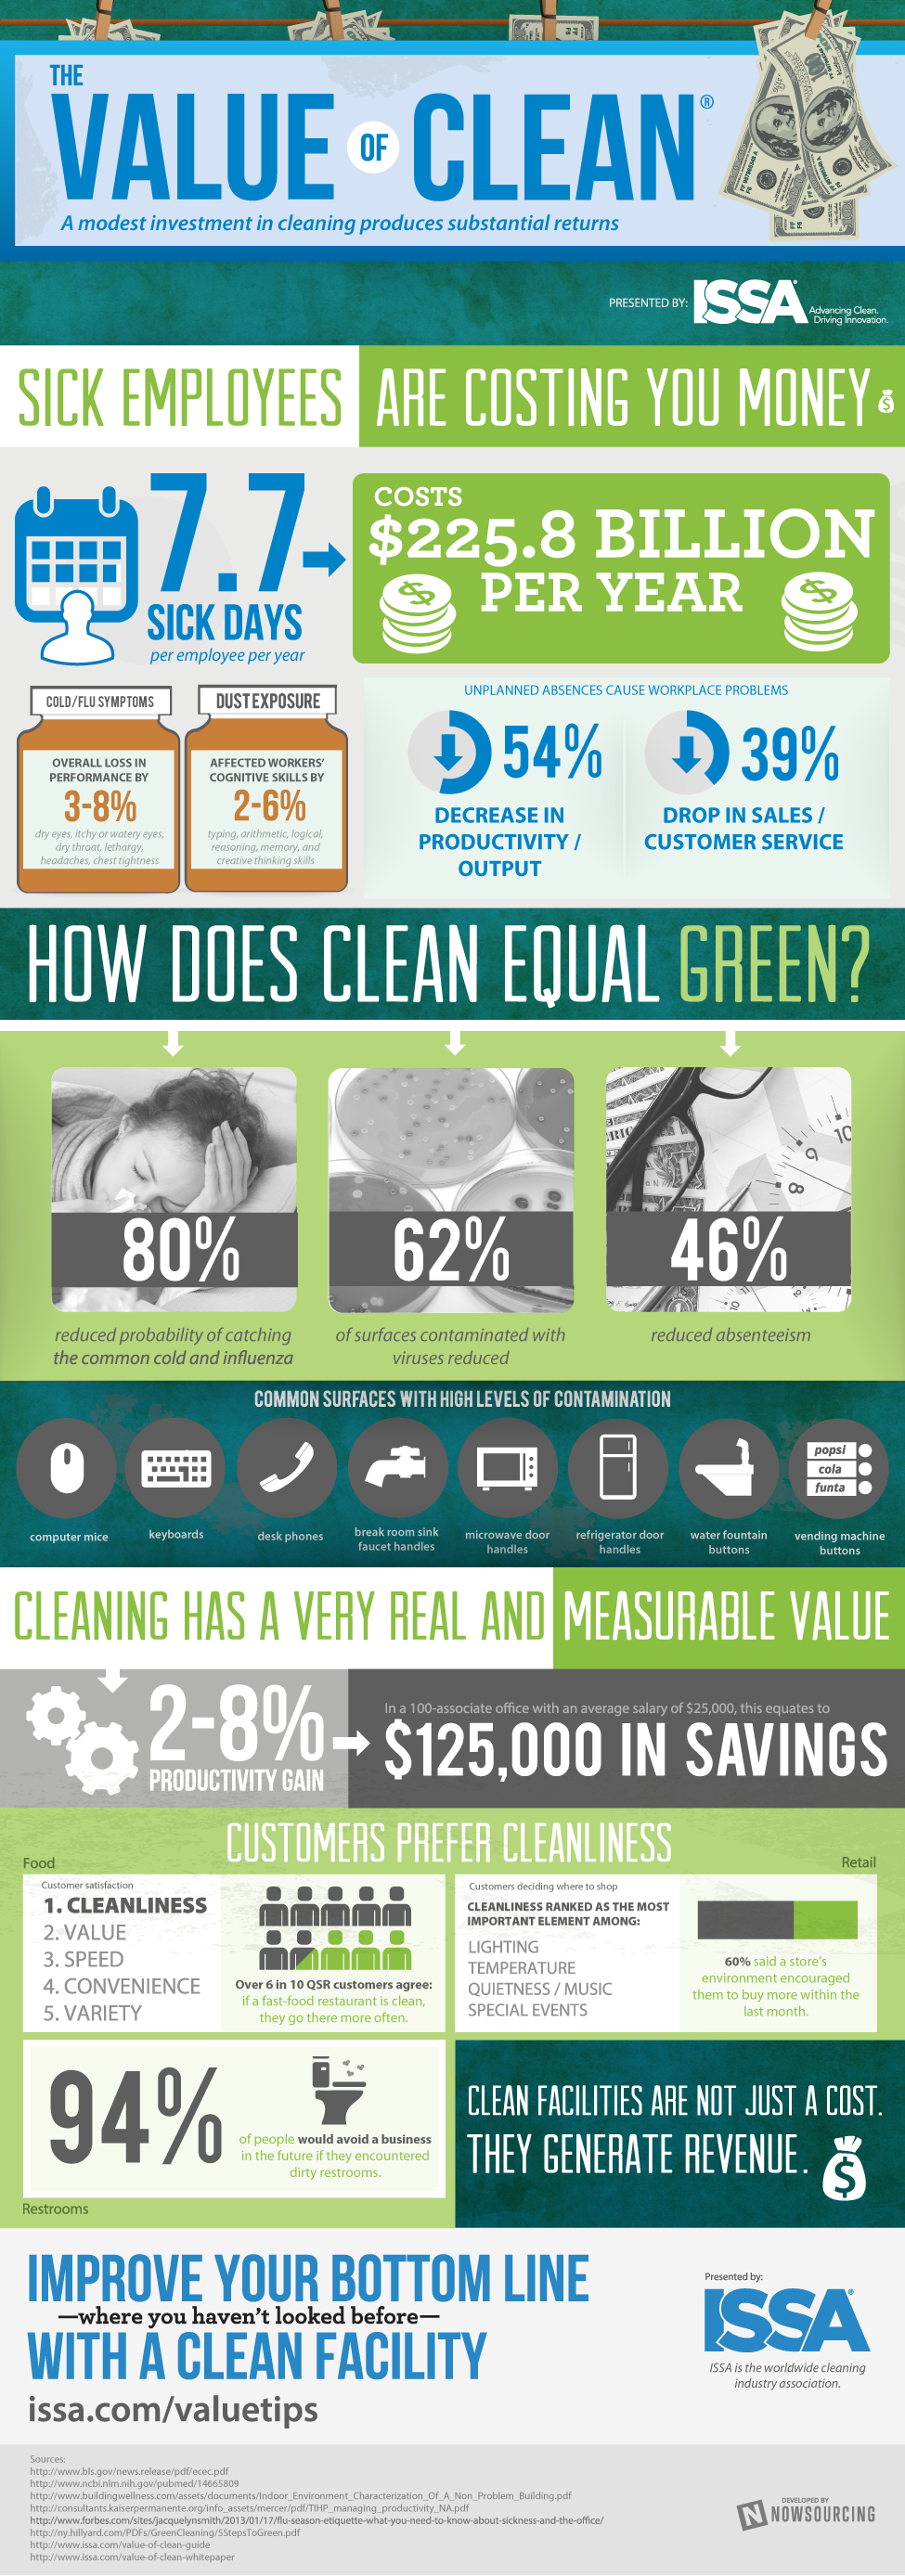 issa-value-of-clean-infographic.png